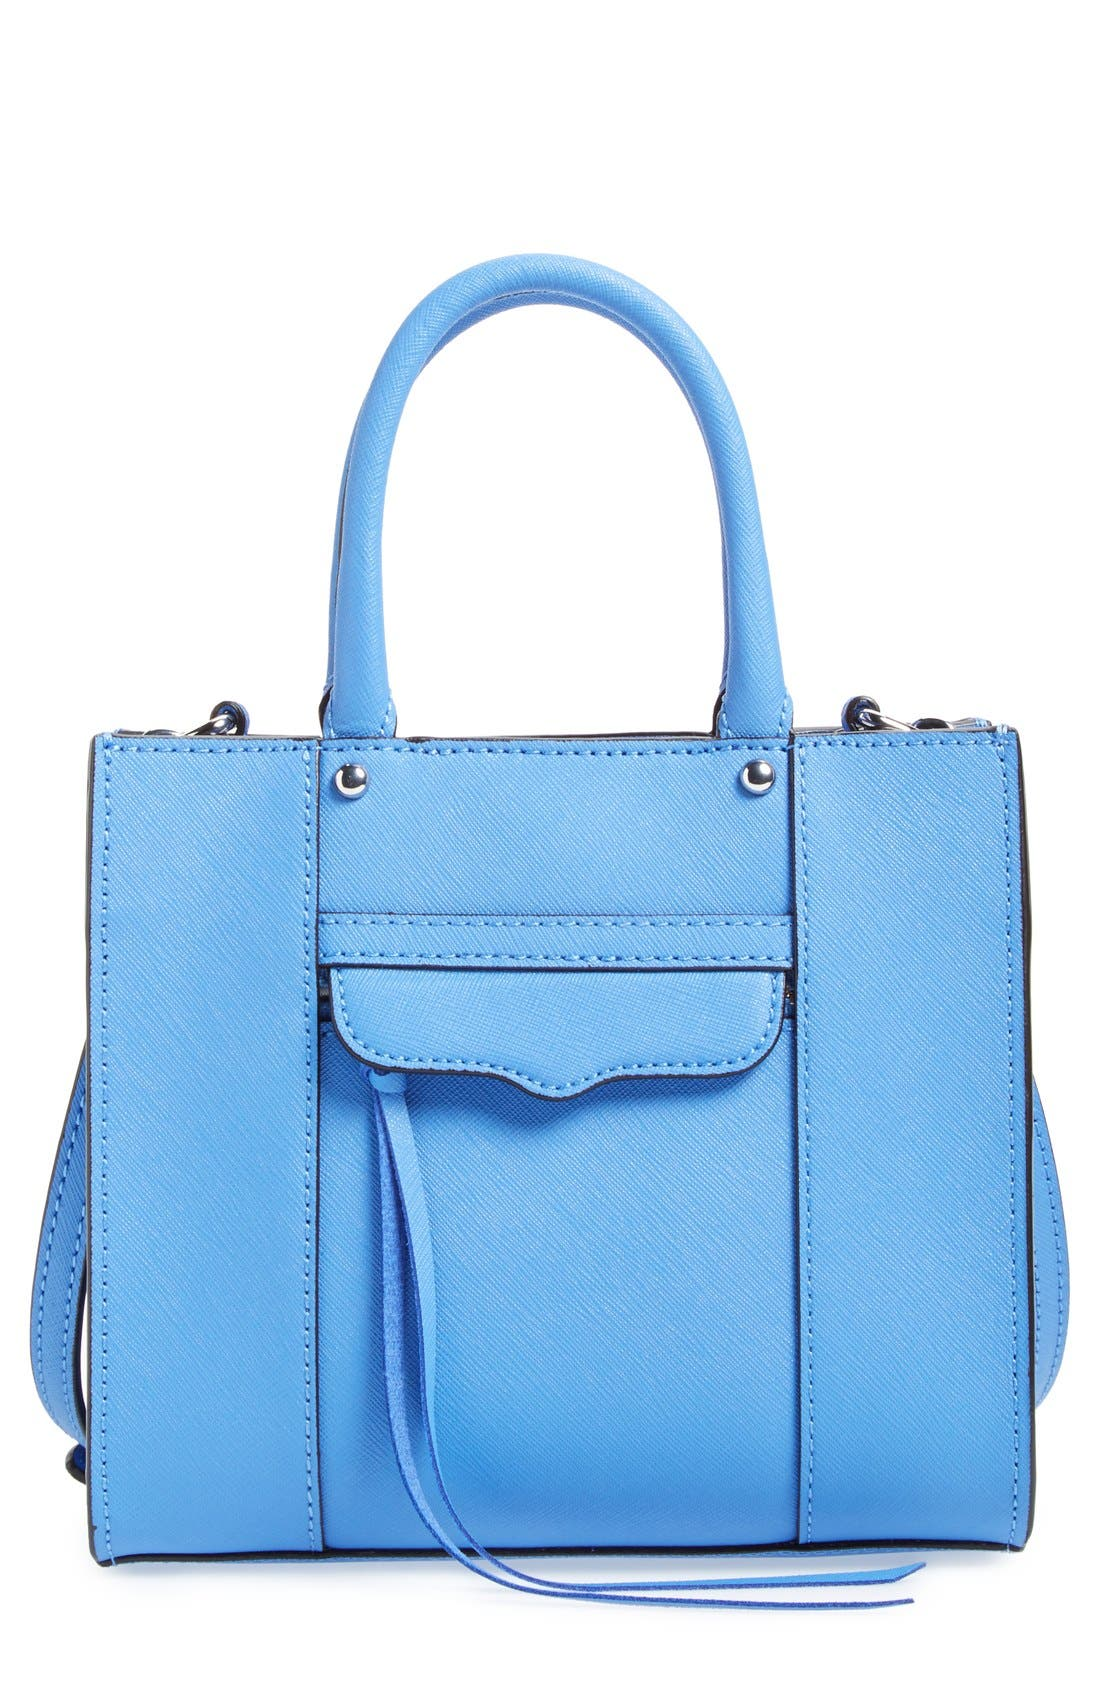 'Mini MAB Tote' Crossbody Bag,                             Main thumbnail 16, color,